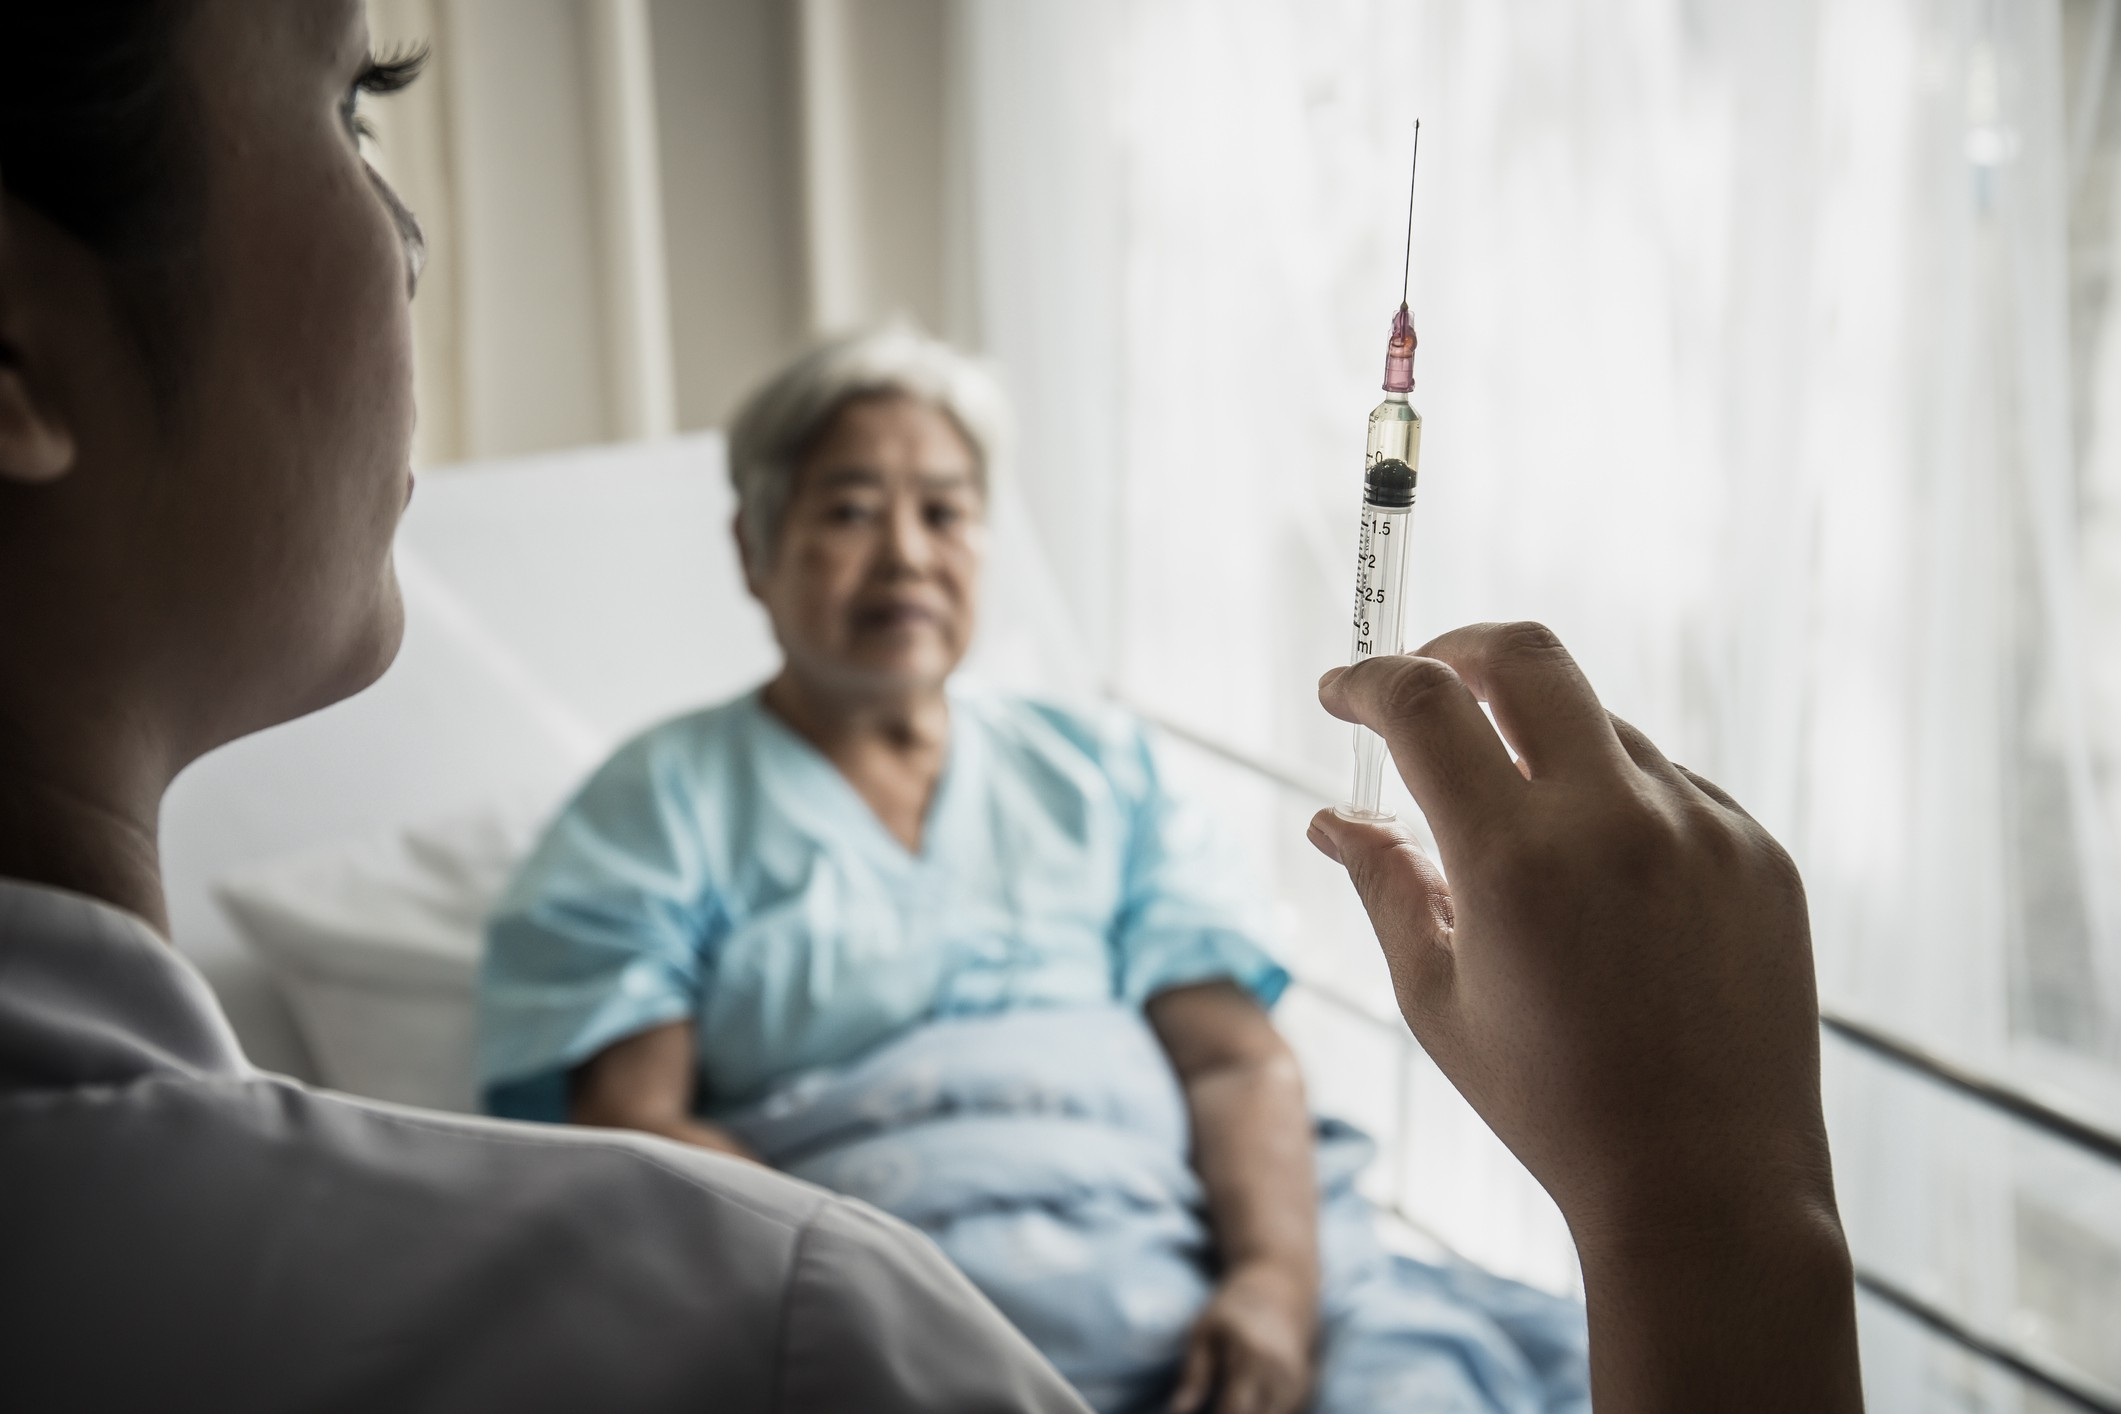 A photo of a nurse holding up a syringe with an elderly woman sitting in a hospital bed in the background.